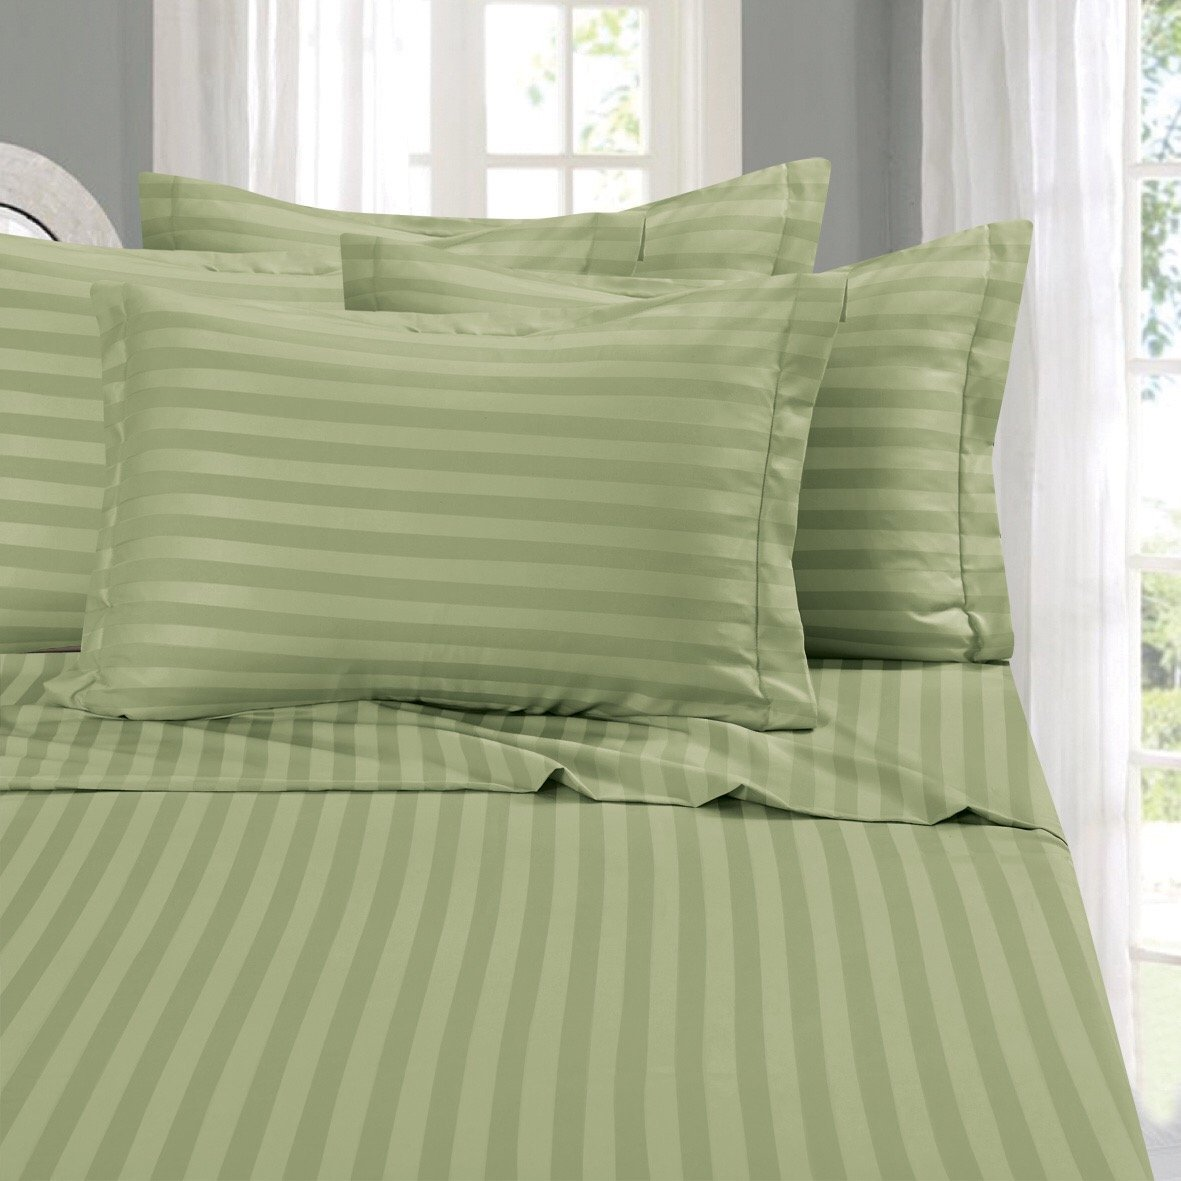 HOT Amazon Deal: 1500 Thread Count Egyptian Luxurious Sheet Set Only $22.99 – 81% Savings